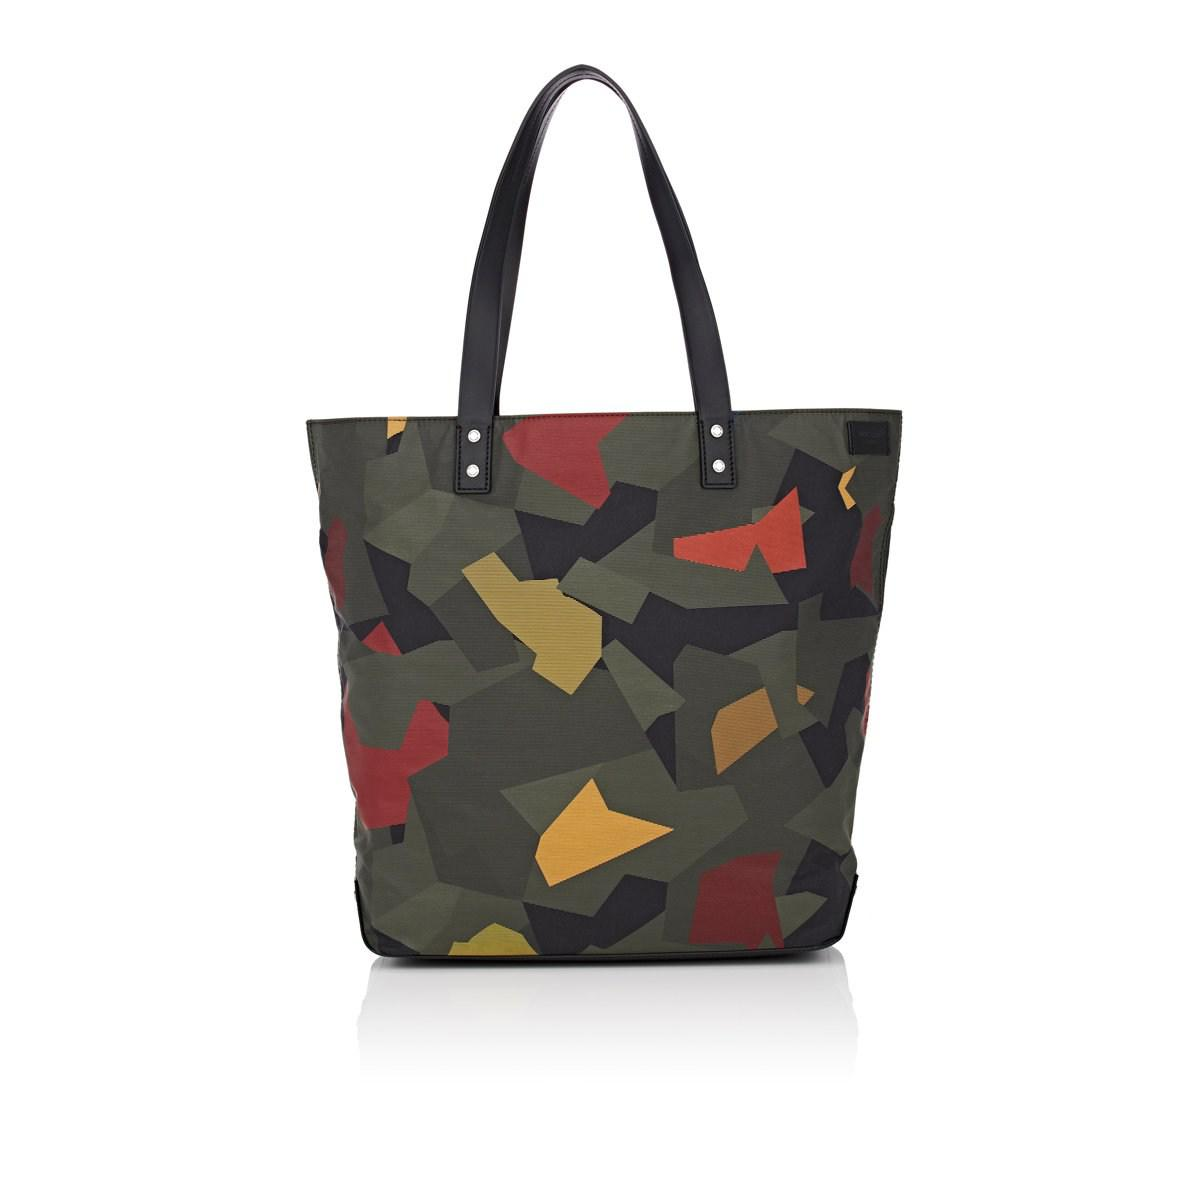 be6fb2cb7ae0 Lyst - Jack Spade Kaleidoscope Tote Bag in Green for Men